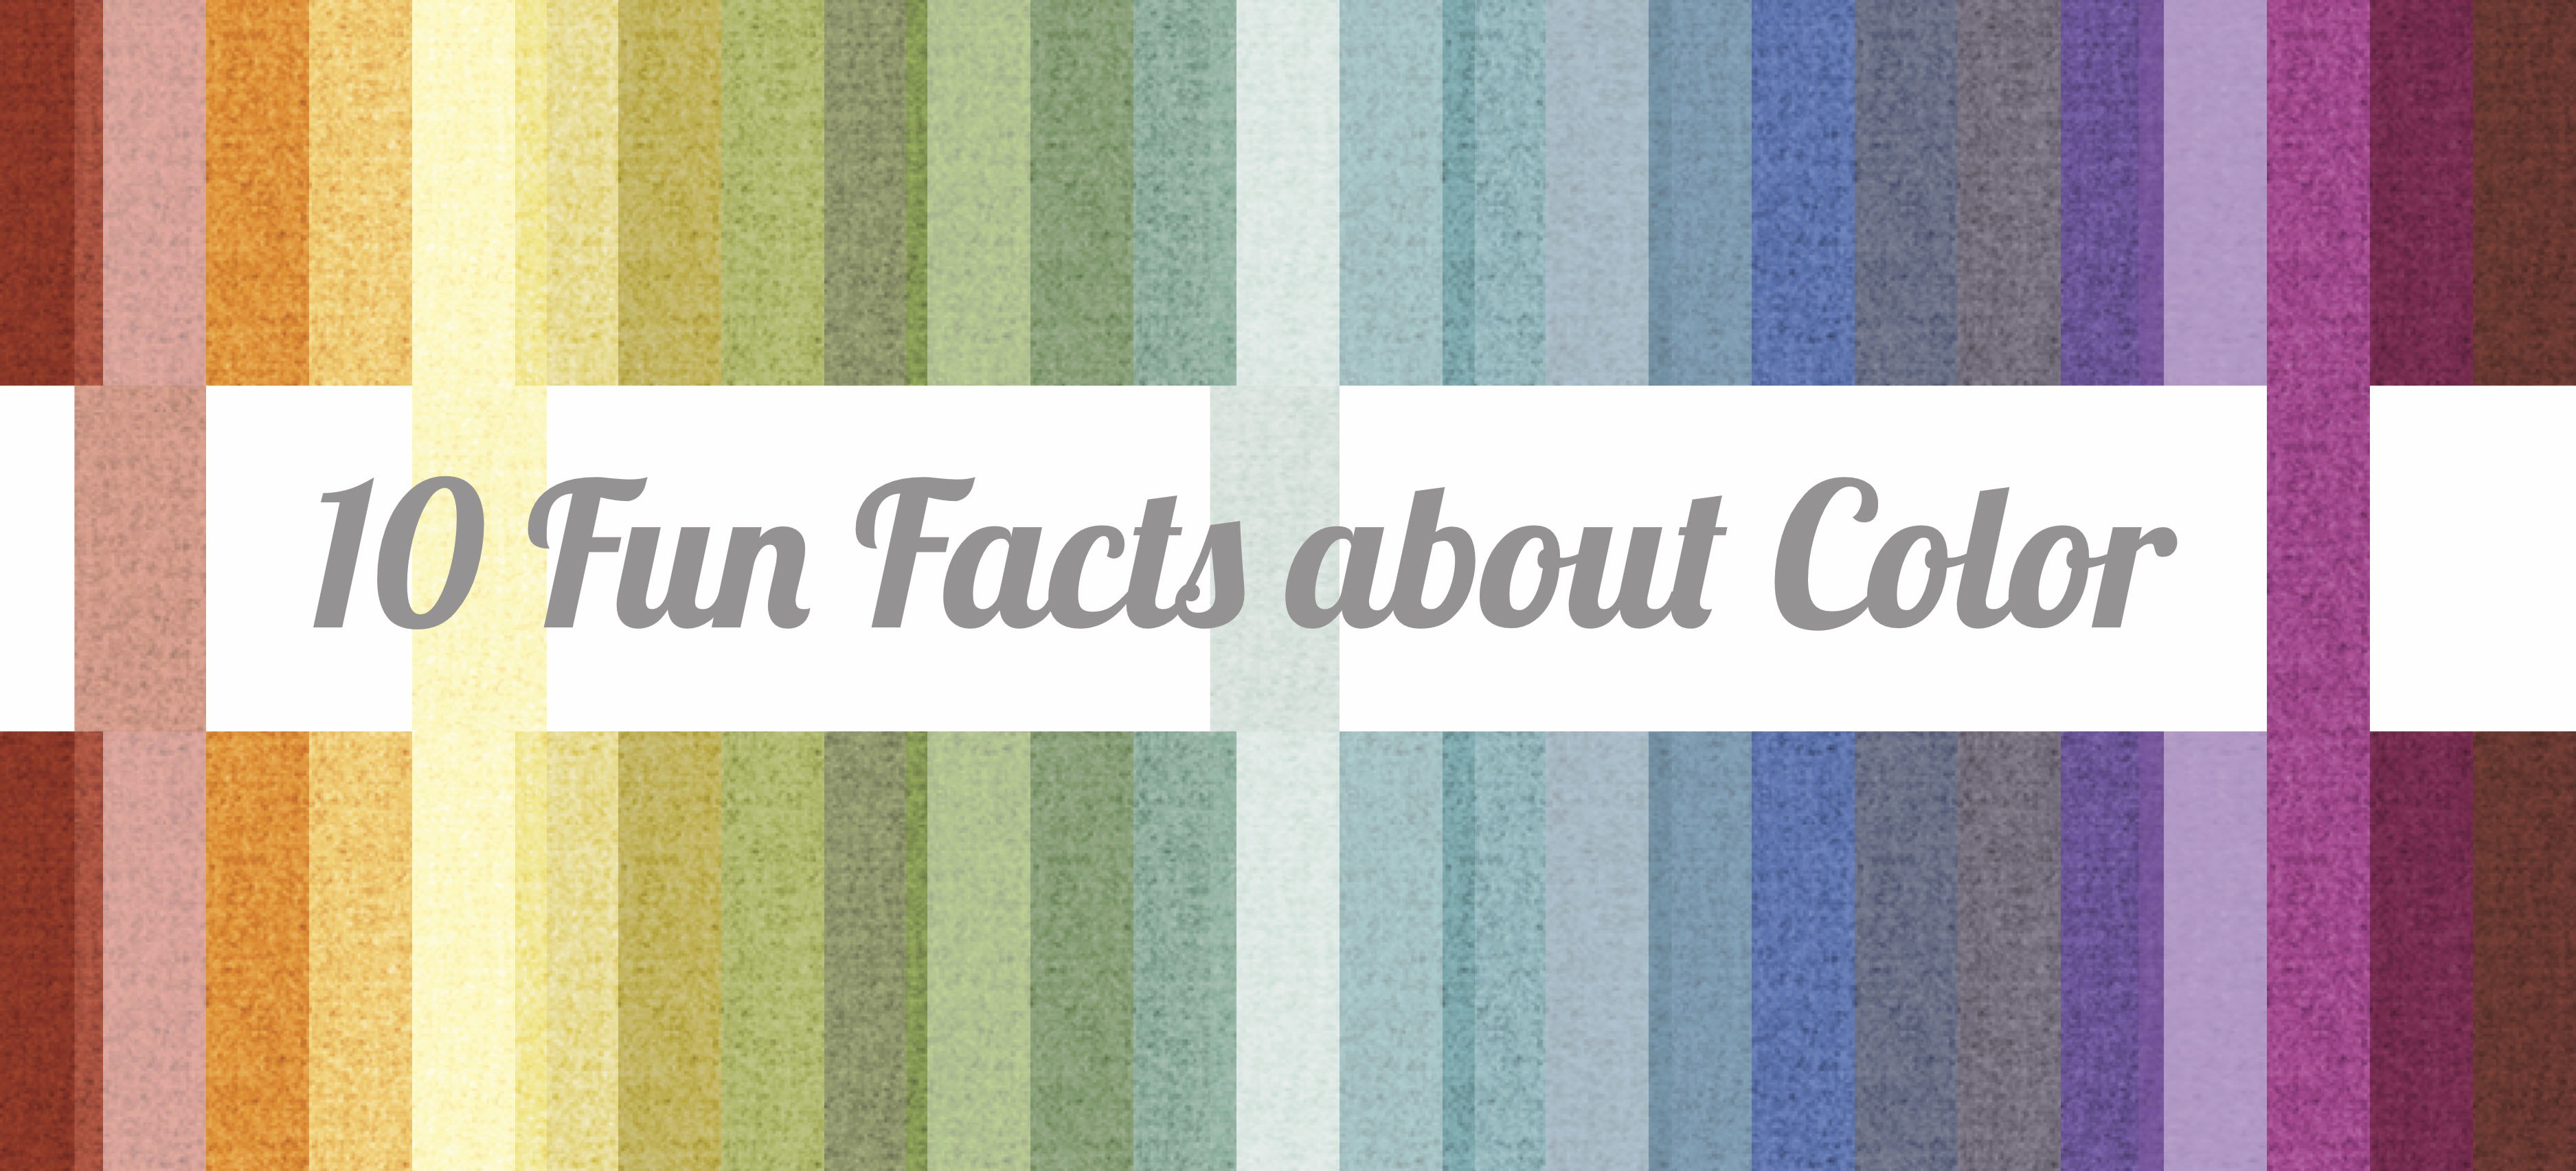 10 Fun Facts About Color Design Pool